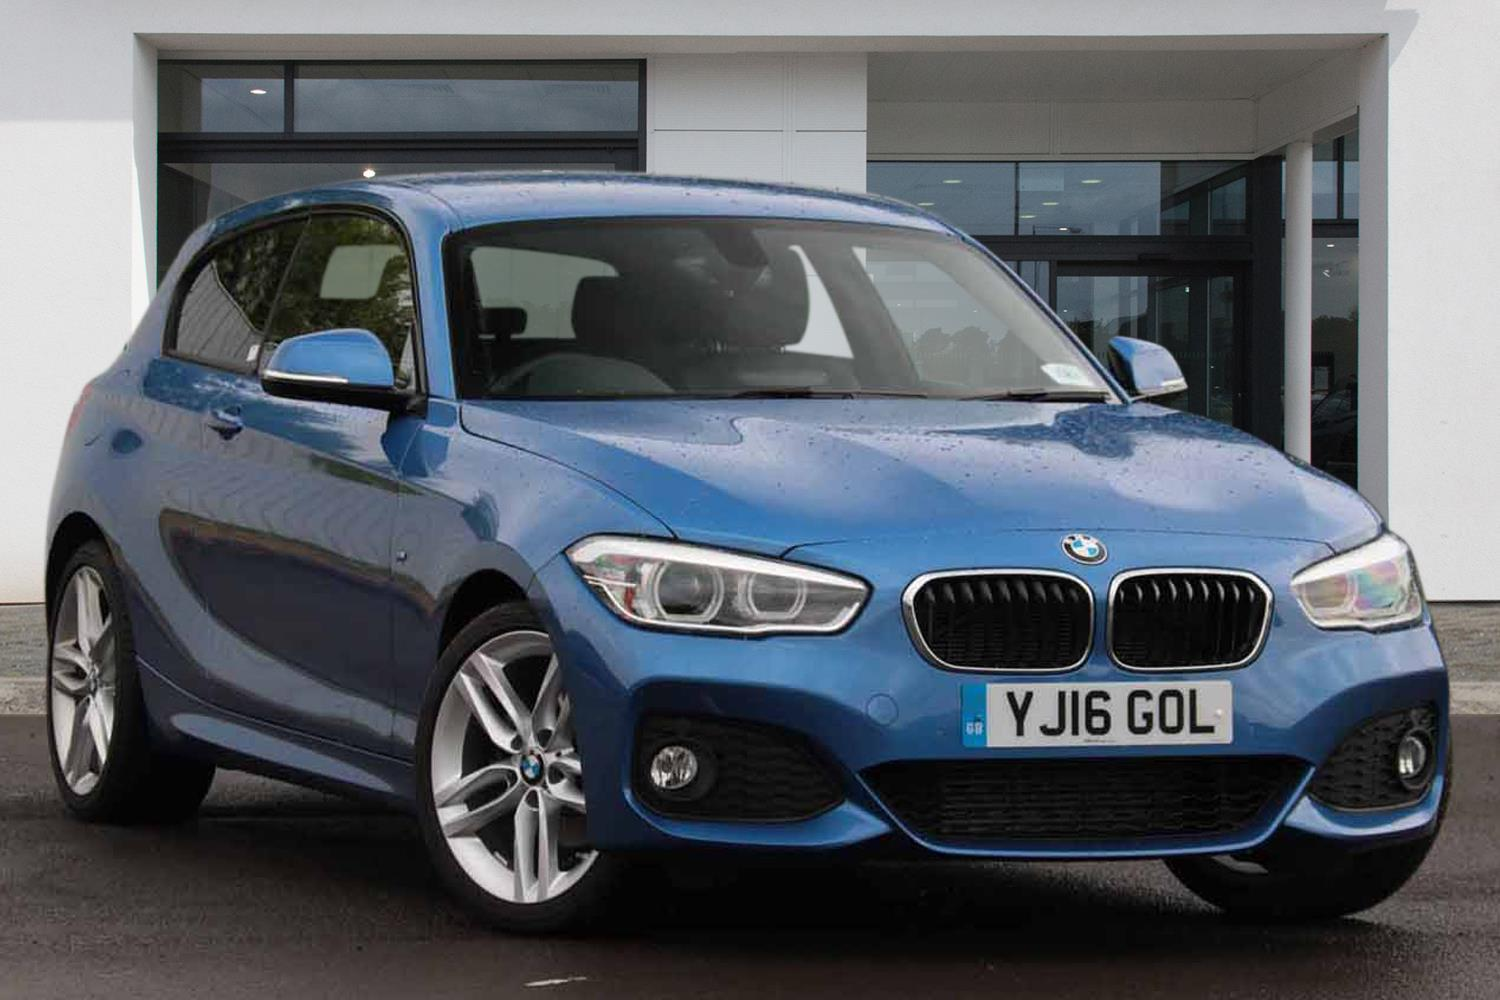 BMW 1 Series 3-door Sports Hatch YJ16GOL - Image 4